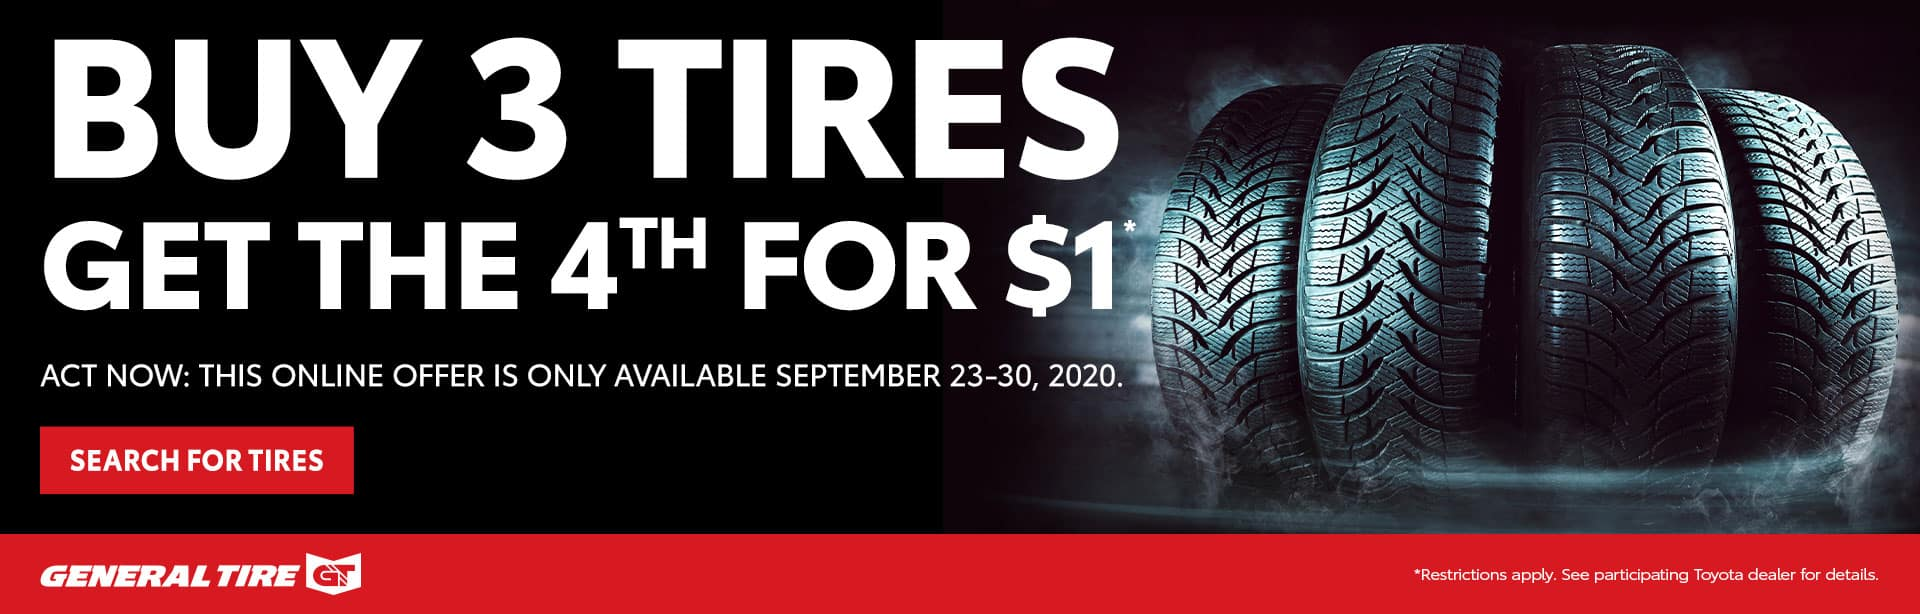 Buy 3 Tires Get 1 Free at Toyota of Fort Walton Beach